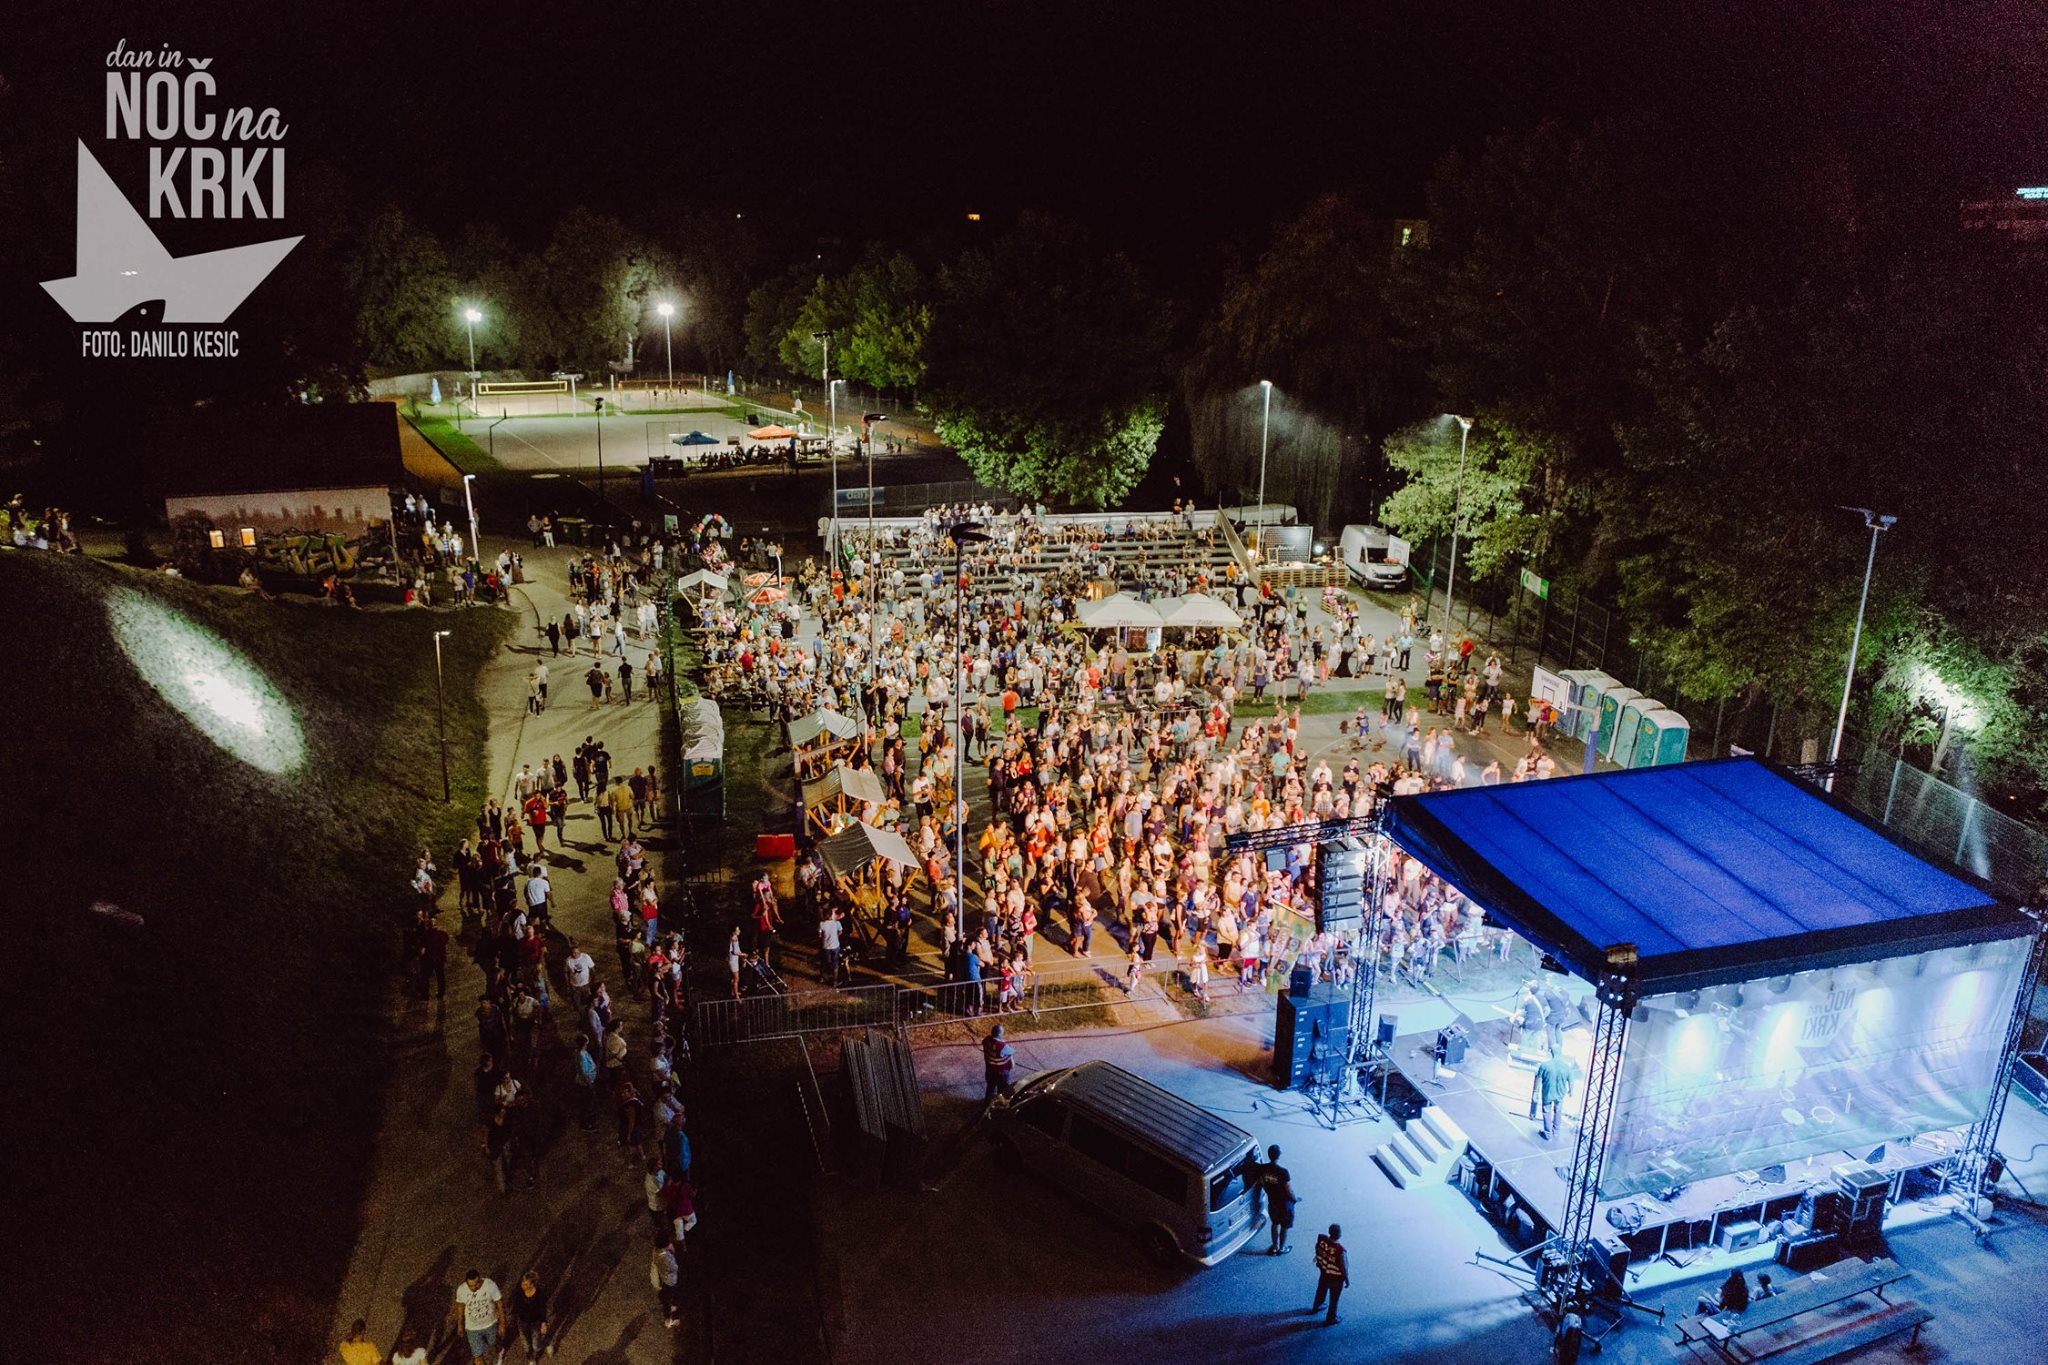 Night on the Krka river & Jumps to the Krka 2019